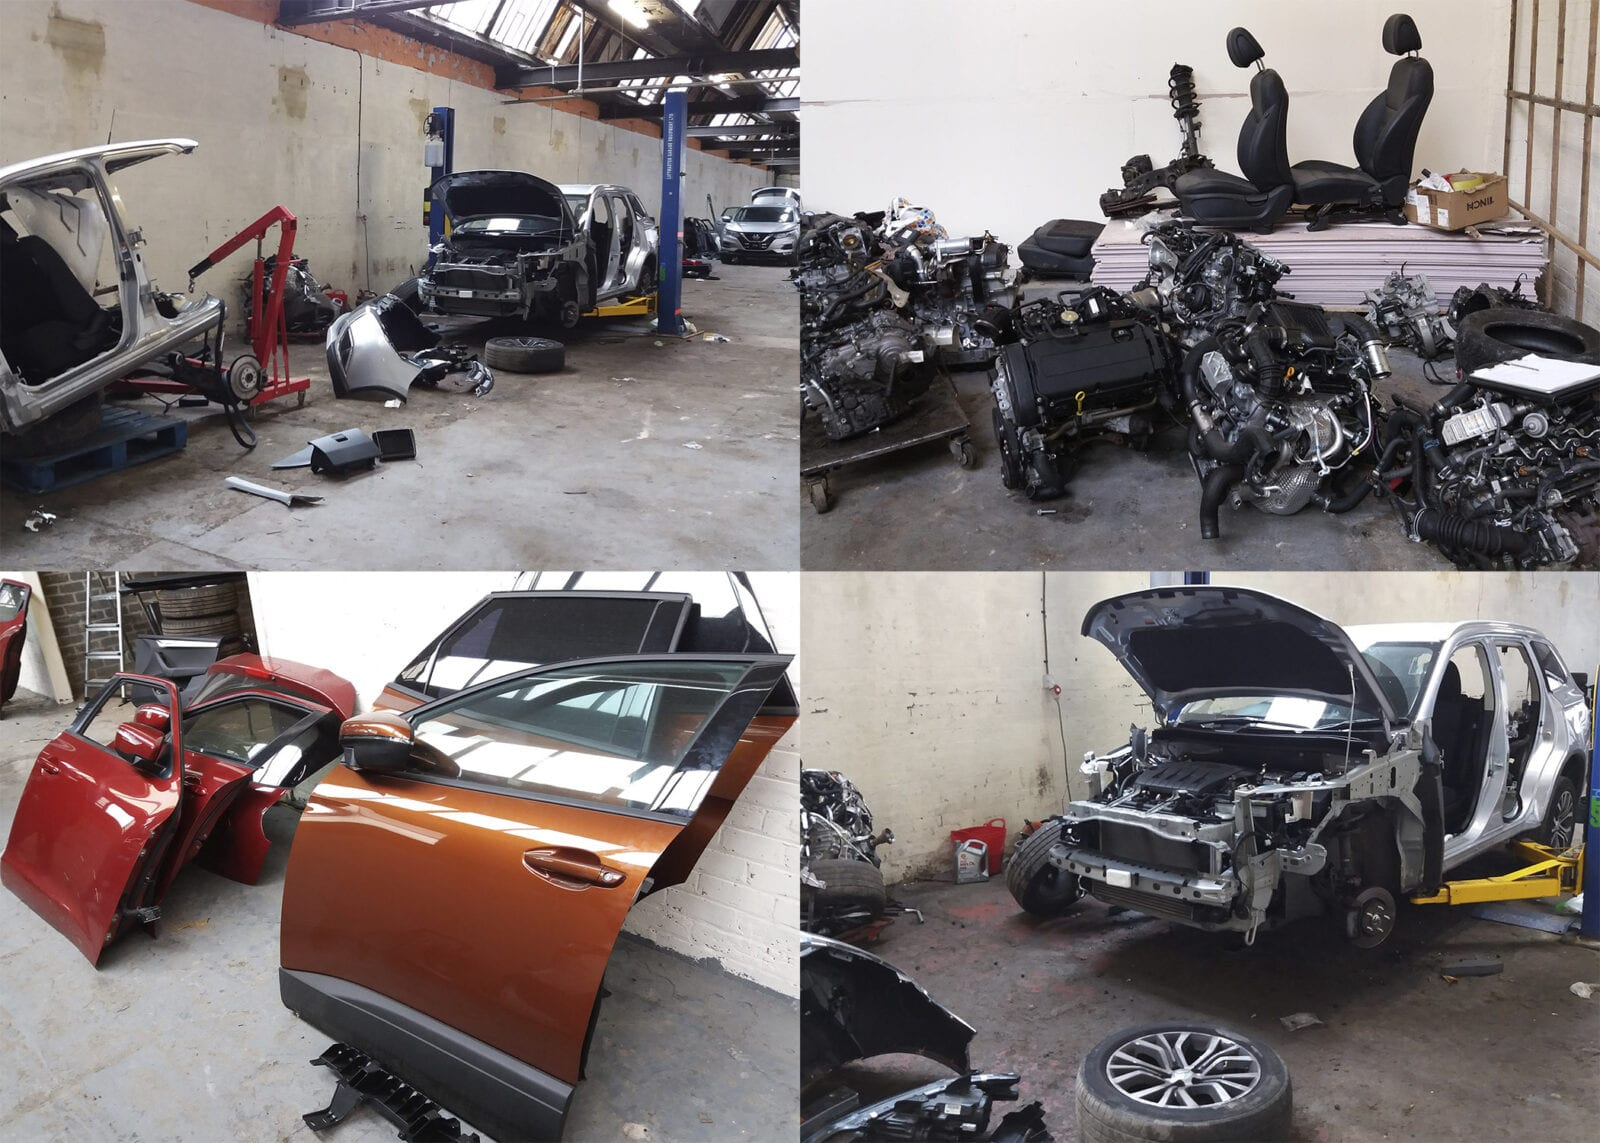 £240k 'chop shop' found in Bury after man mistakenly sells stolen parts to police on eBay, The Manc